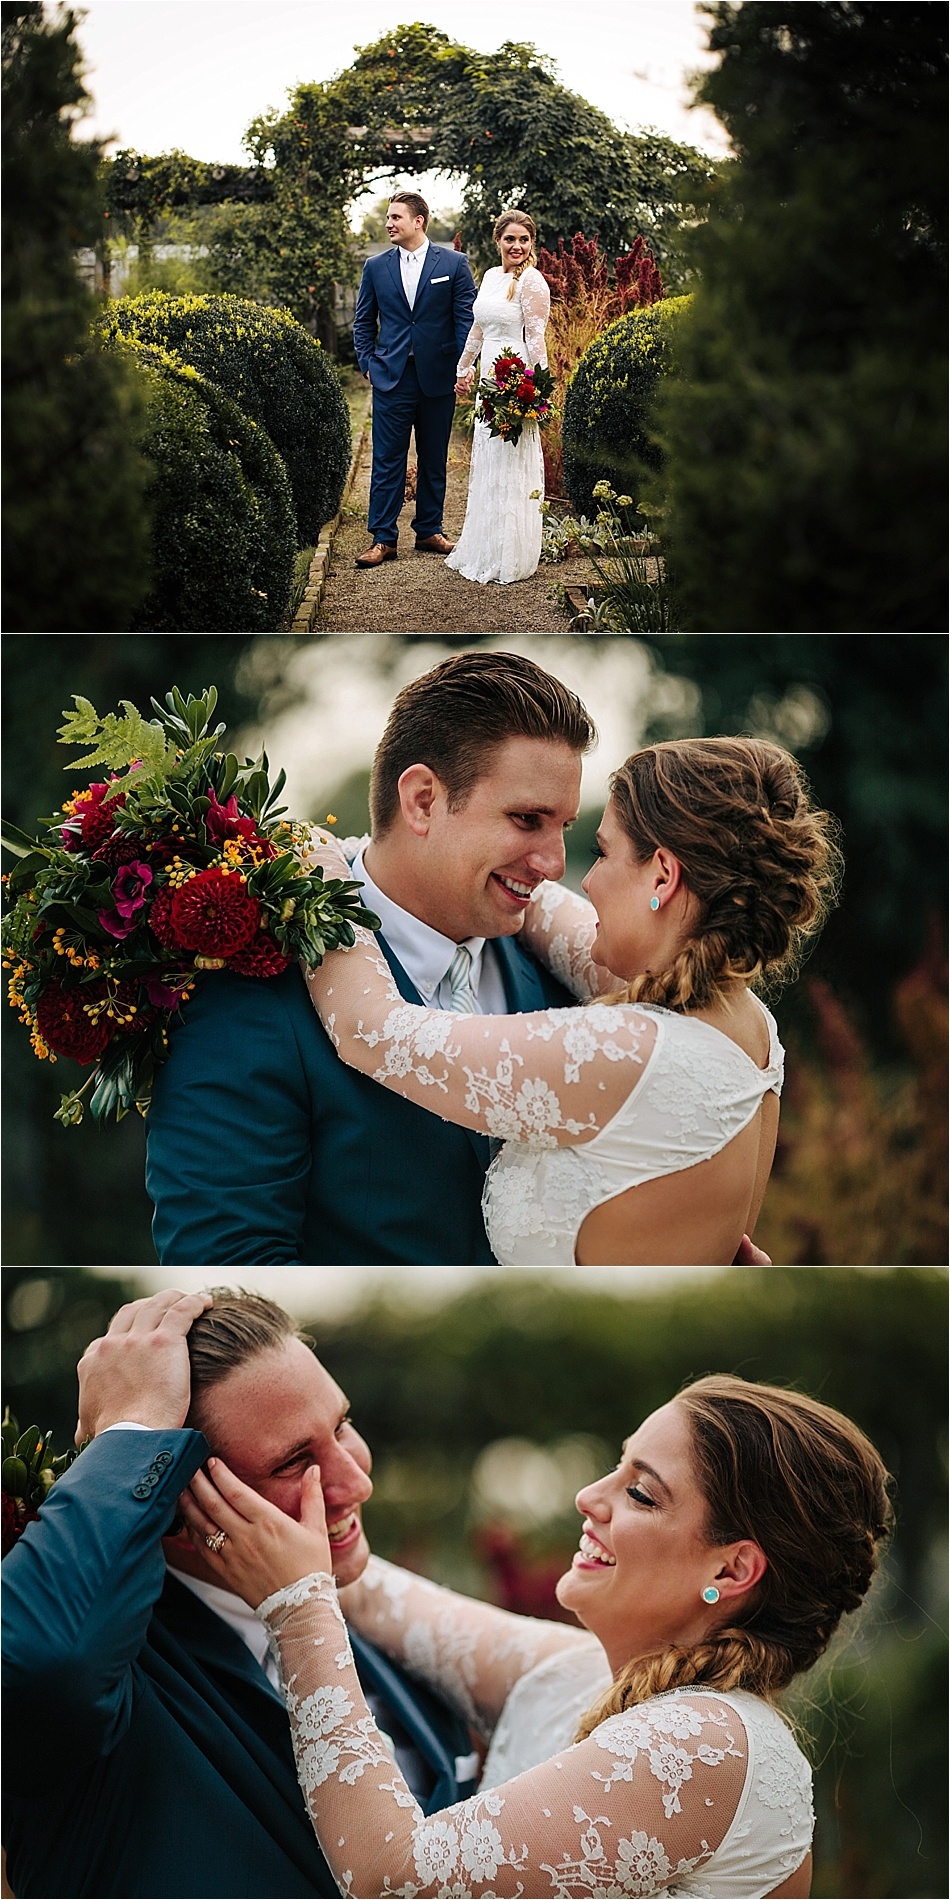 CK-Photo-Nashville-engagement-wedding-photographer-carnton-plantation